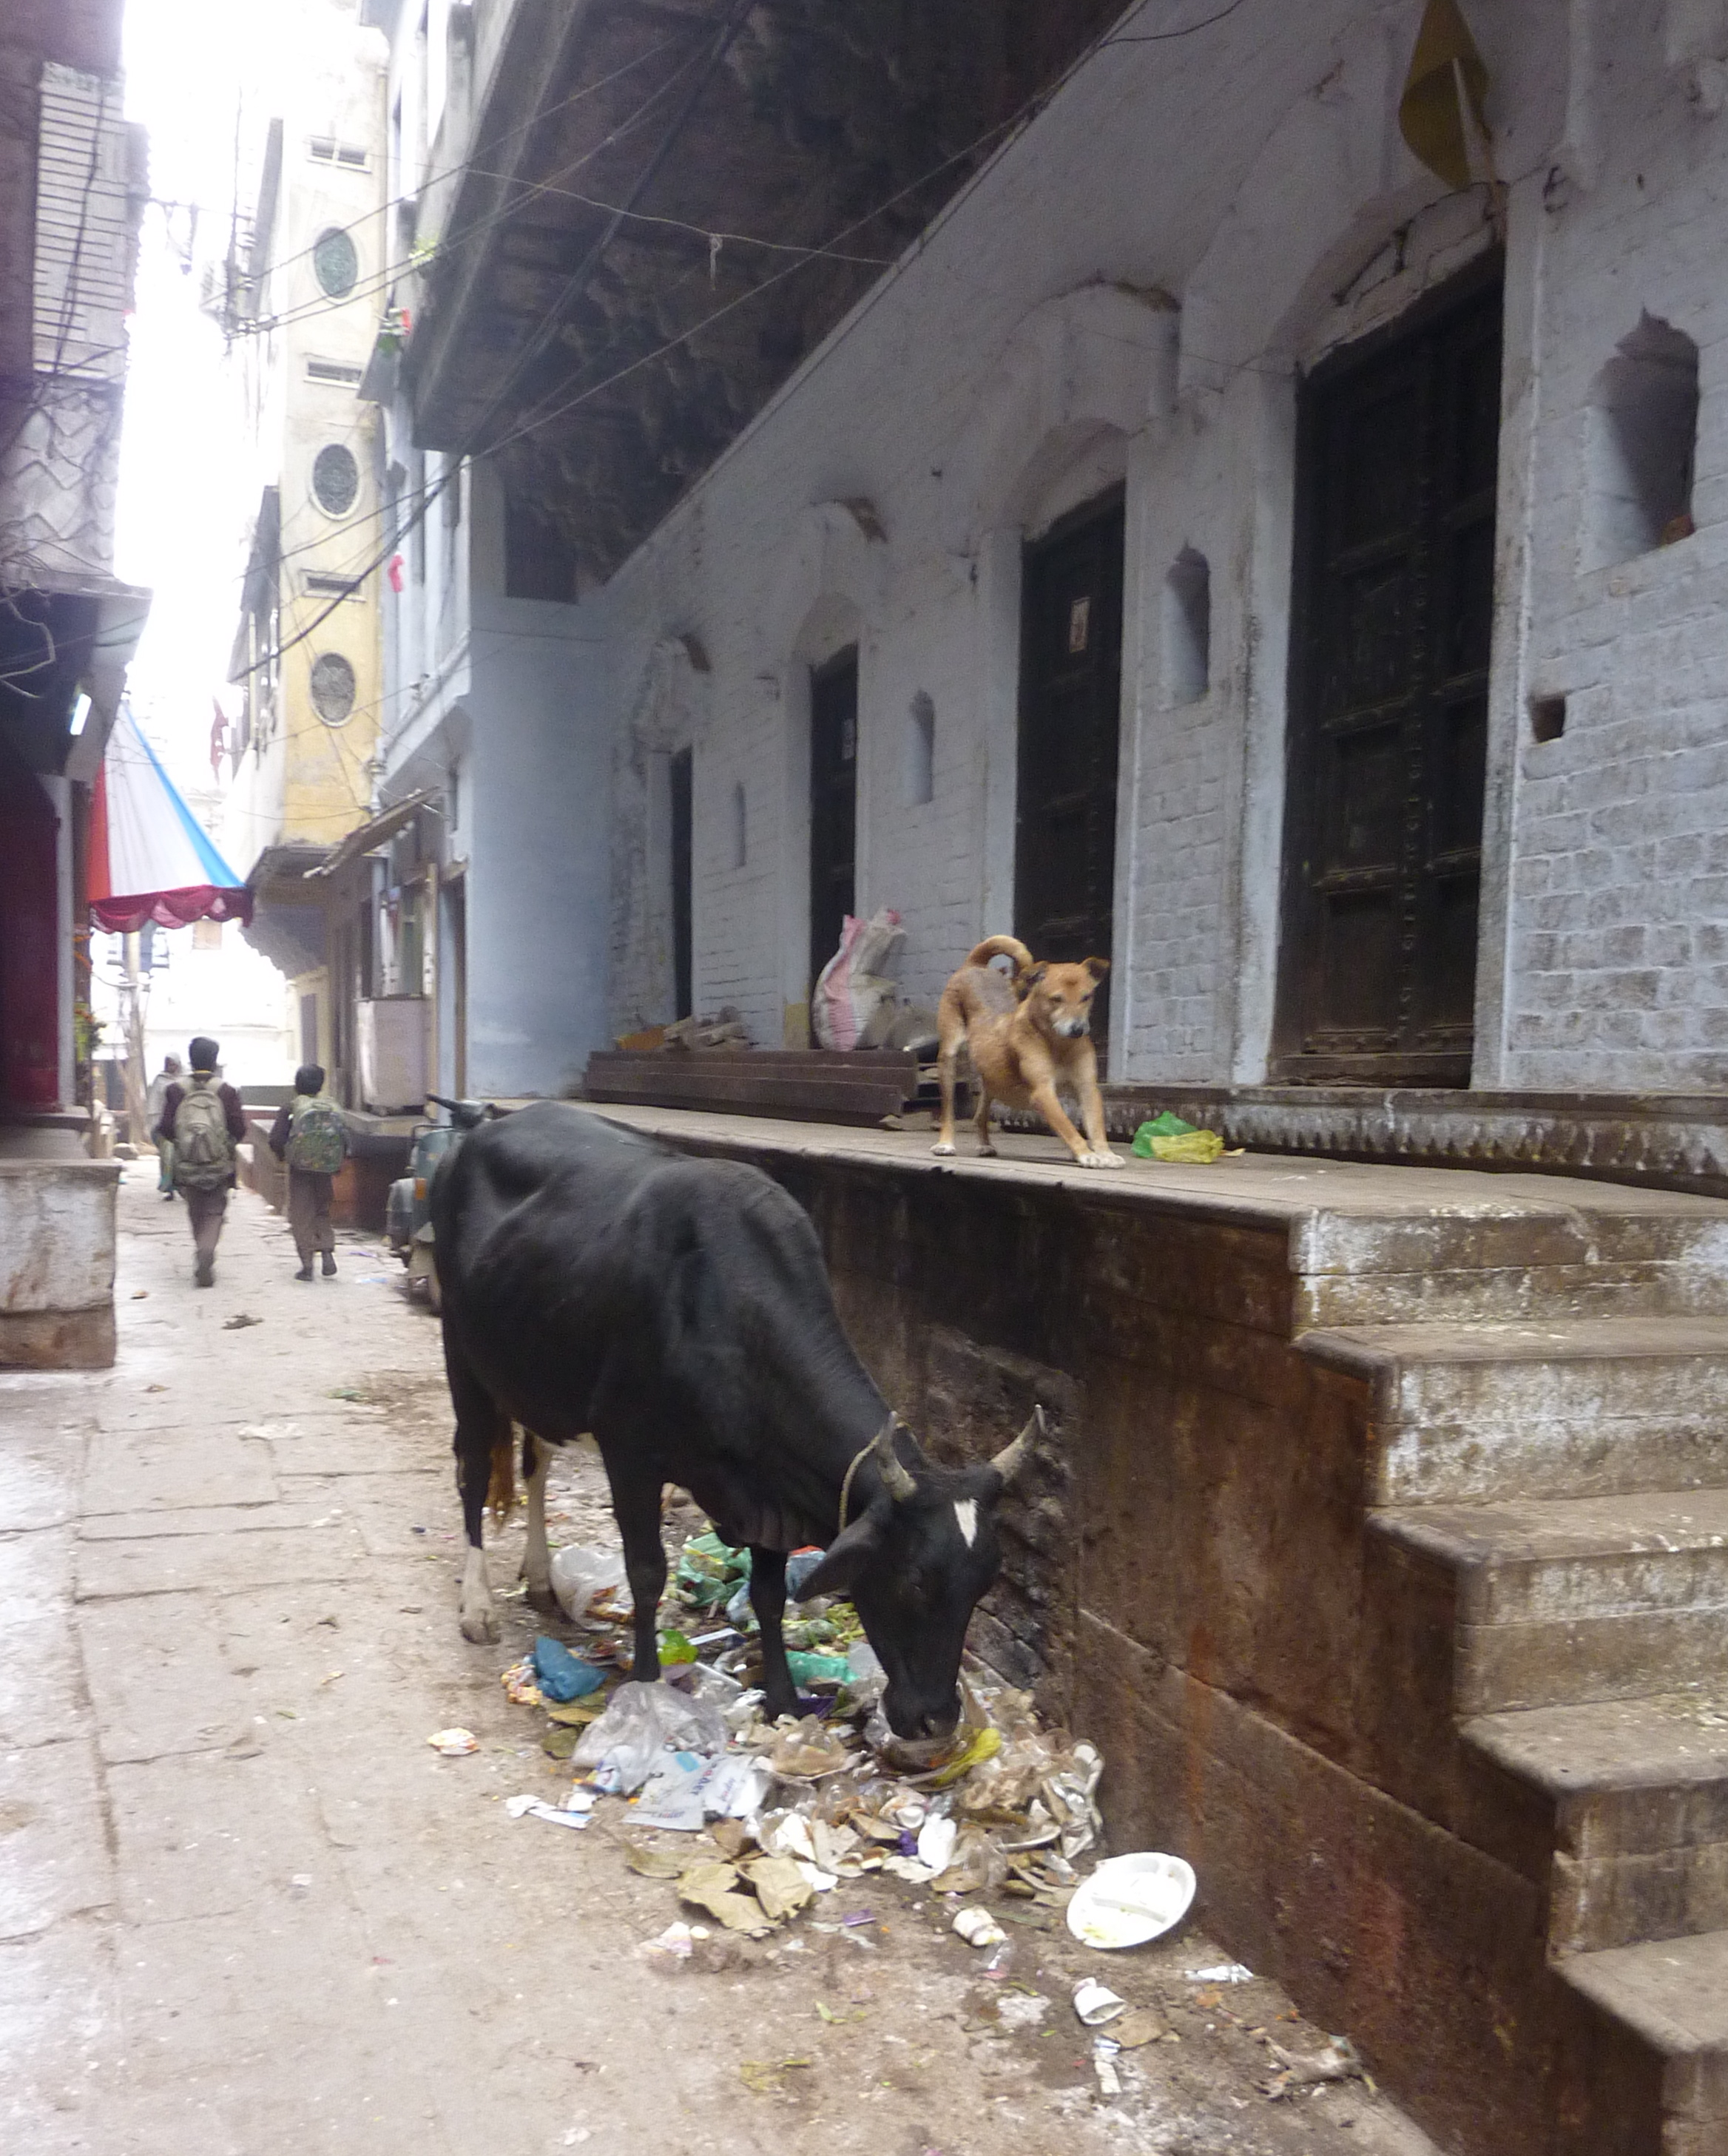 Cow and Downward Dog